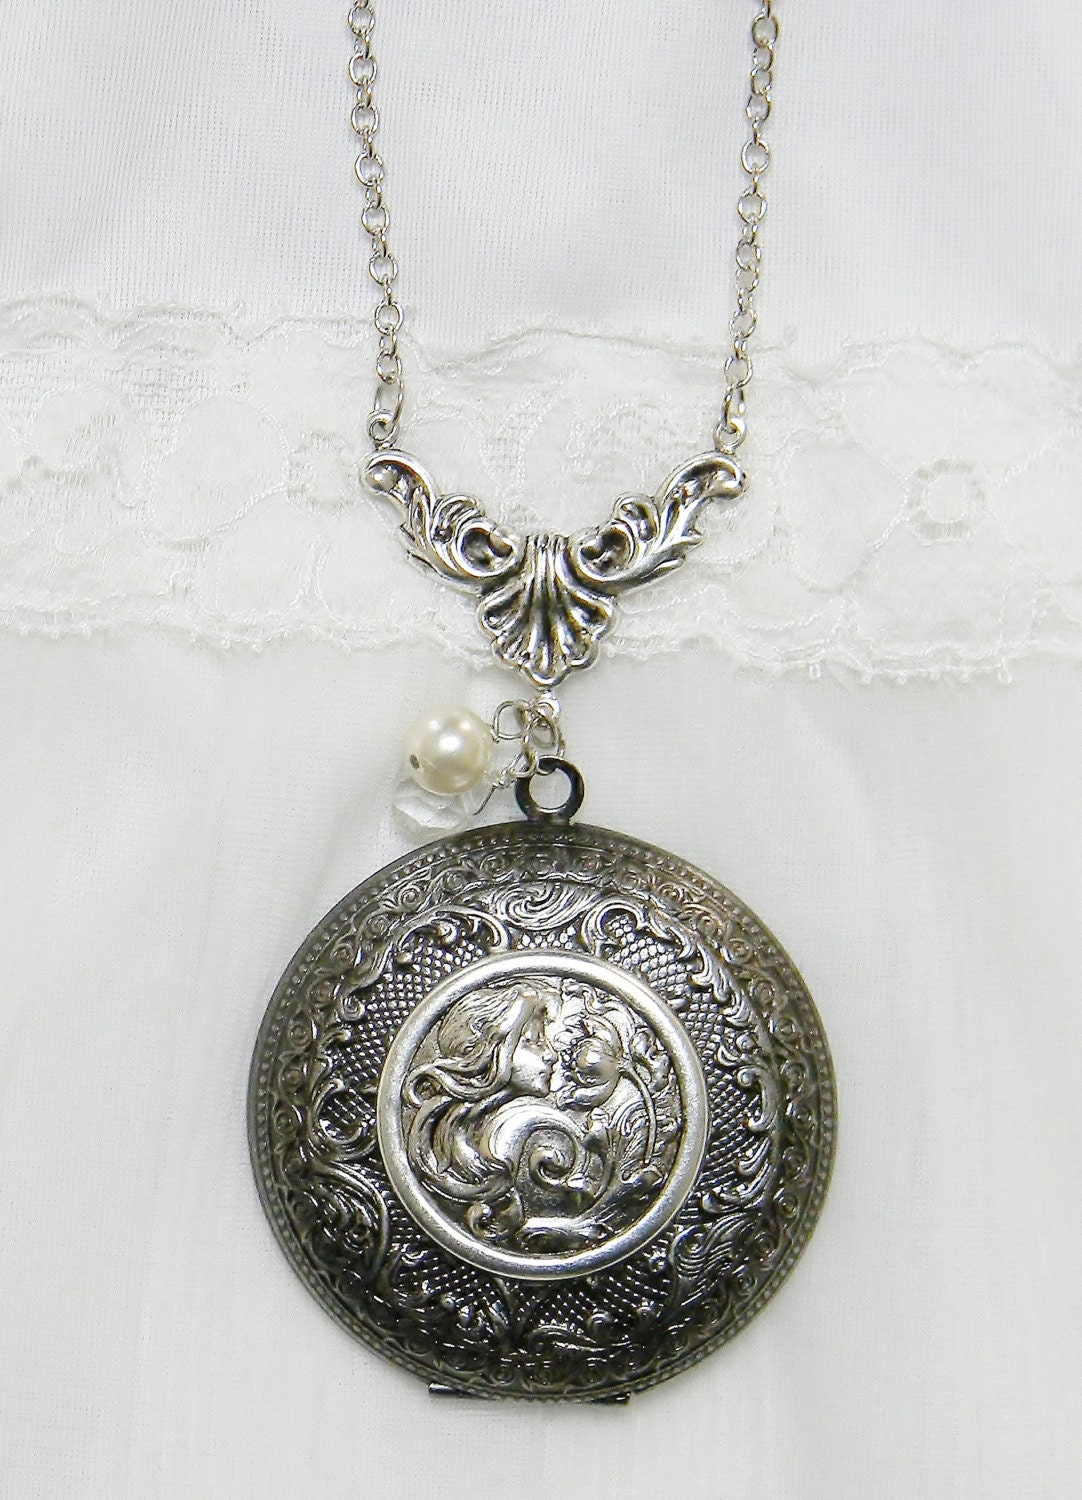 Solid Perfume Locket Necklace, Locket Necklace, Solid Perfume Necklace, Gift